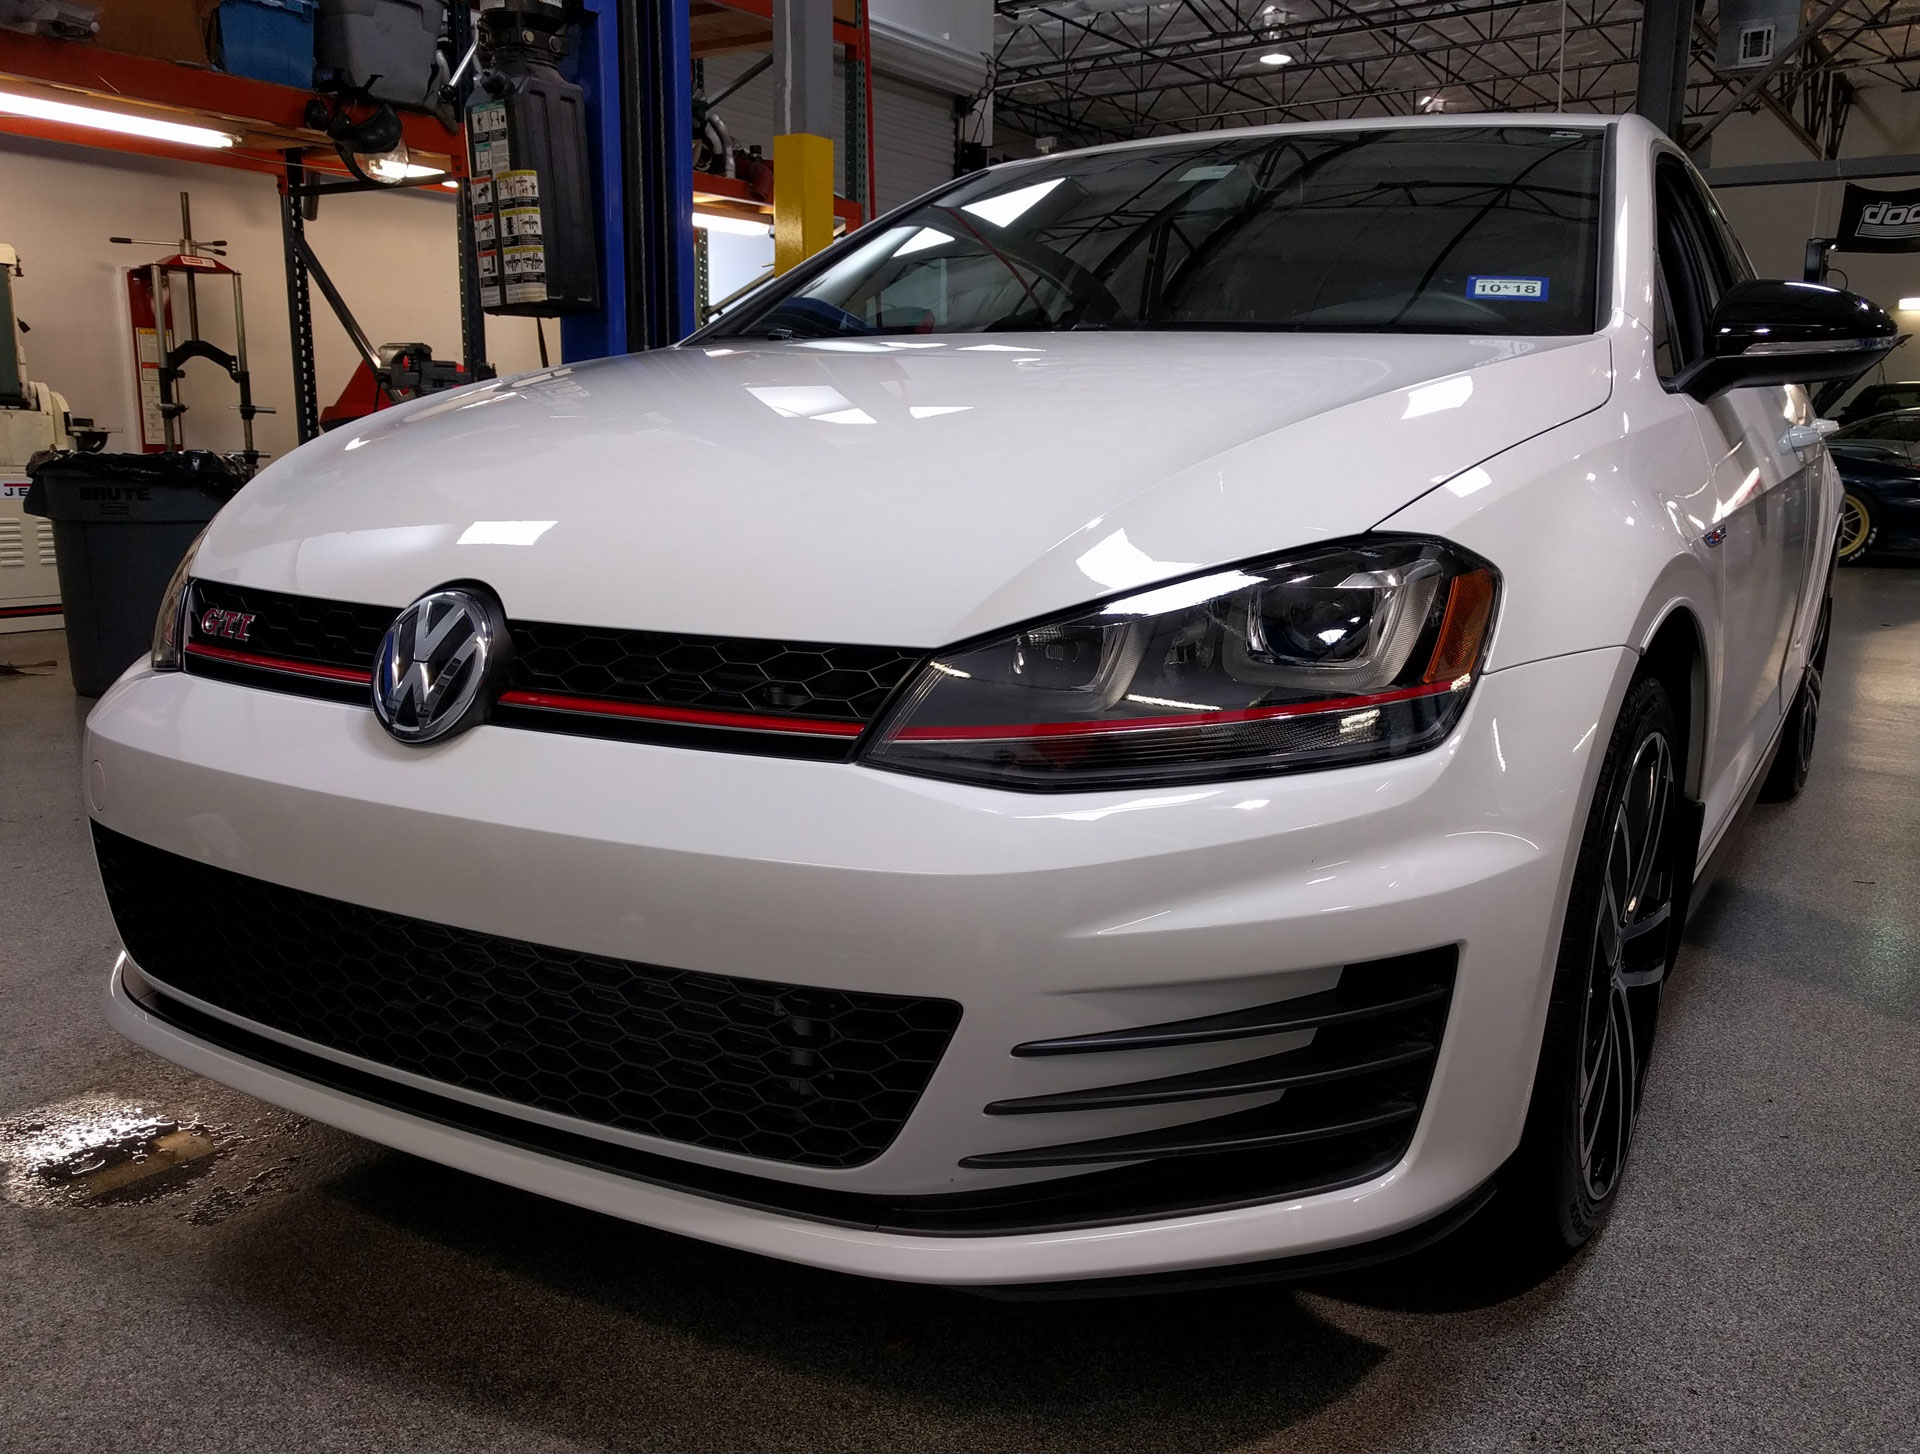 VW GTI protected by Modern Armor with 3M Pro Series Clear Bra Paint Protection Film